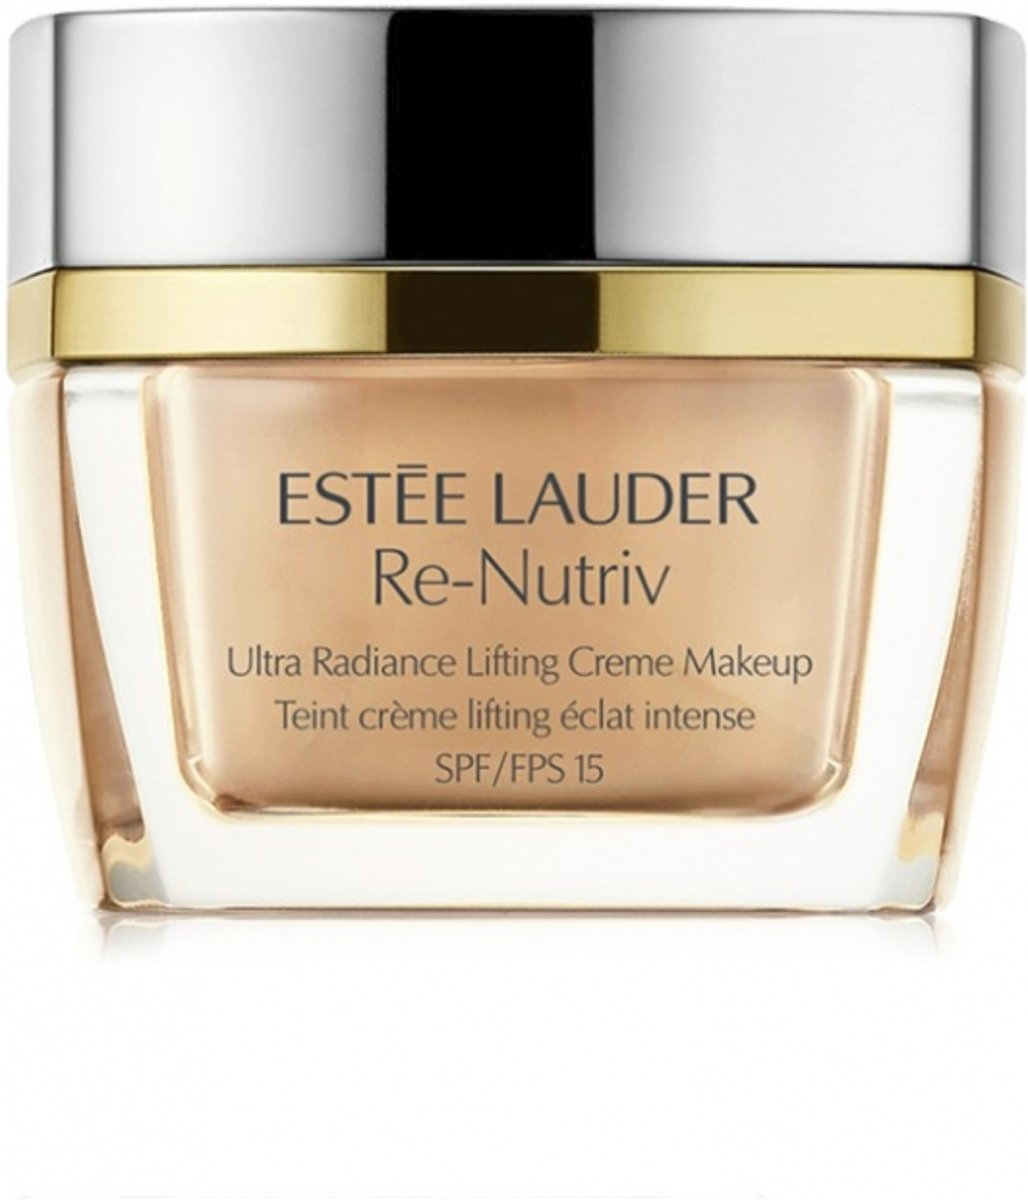 Estée Lauder Re-Nutriv Ultra Radiance Lifting Creme Make-up Foundation 30 ml - 4N1 - Shell Beige